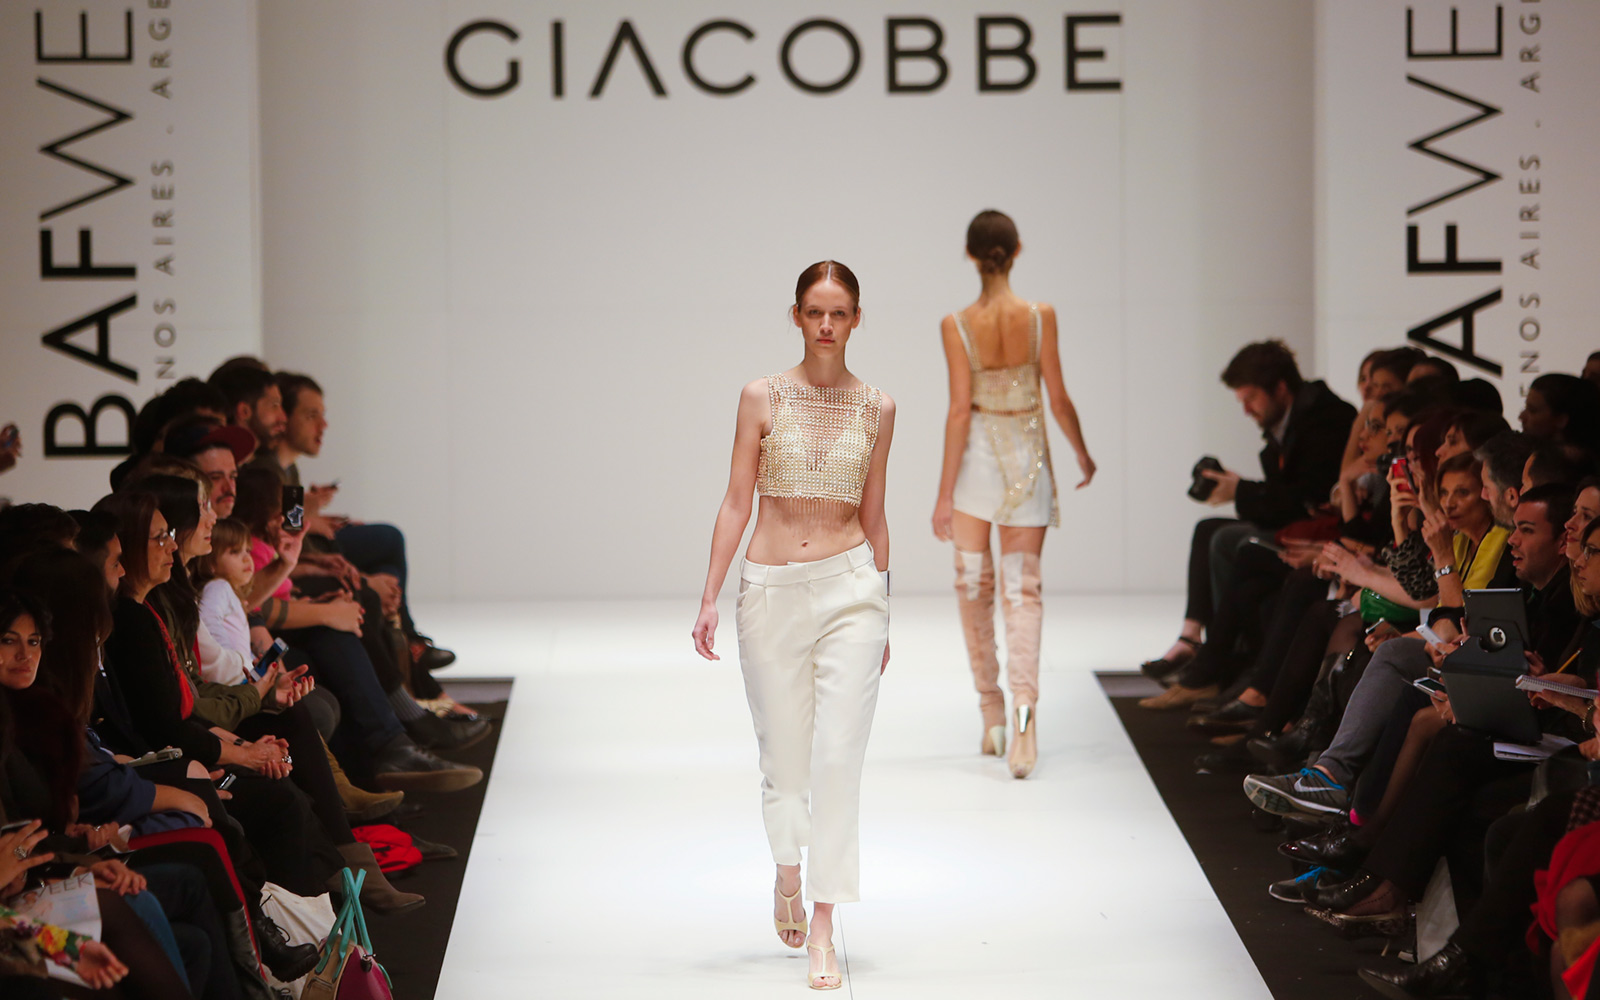 Fashion Week, Buenos Aires, Argentina